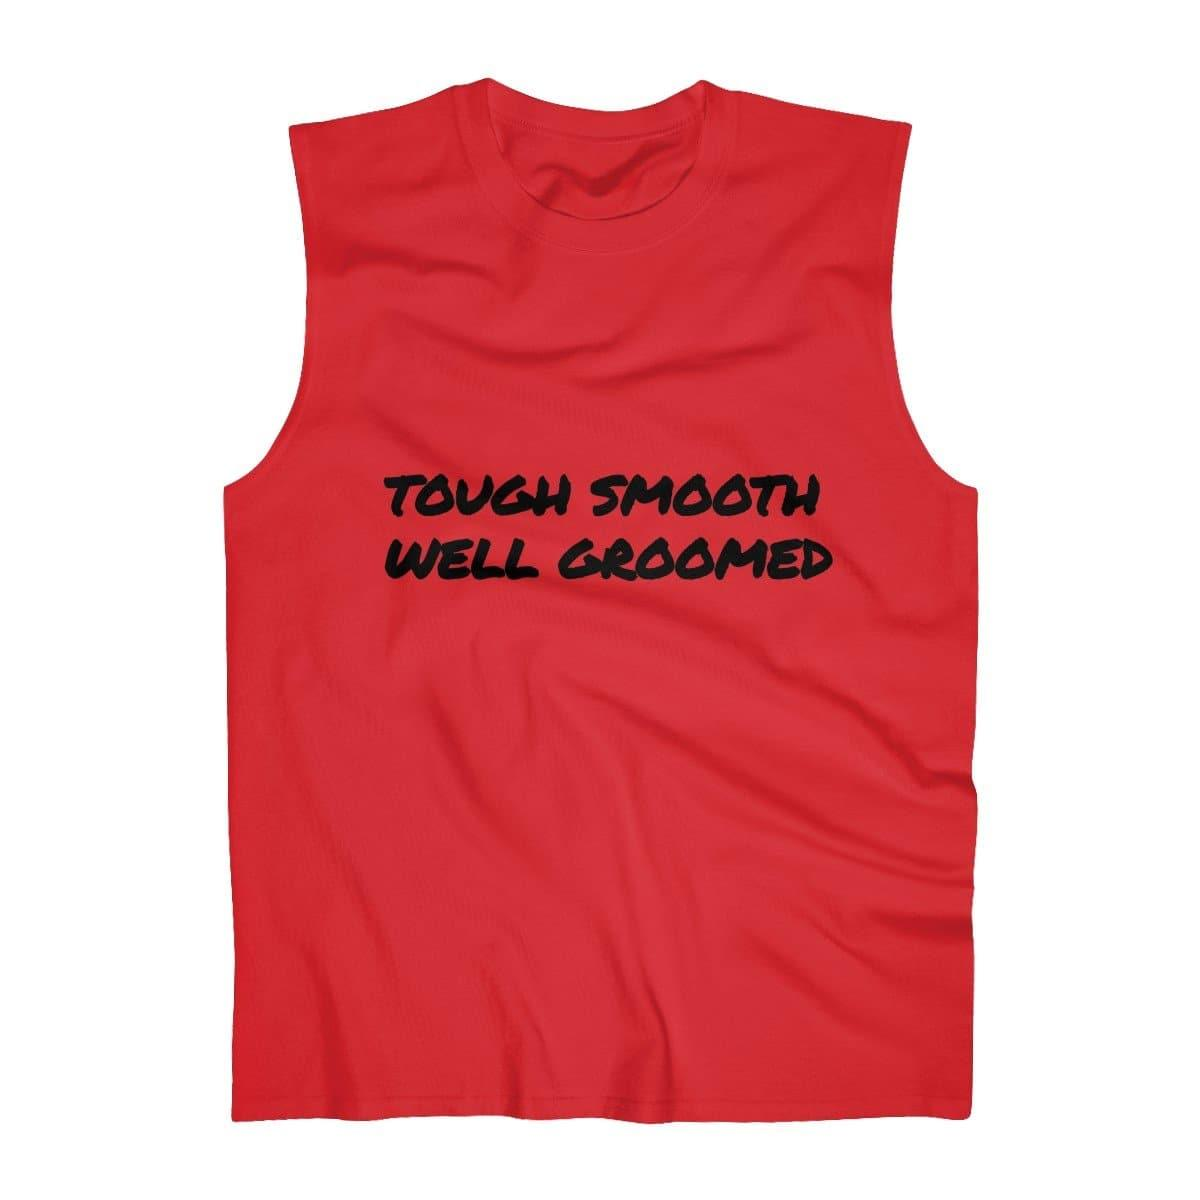 TSWG (Tough Smooth Well Groomed) Men's Ultra Cotton Sleeveless Tank Voluptuous (+) Size Available - Tie-Fly